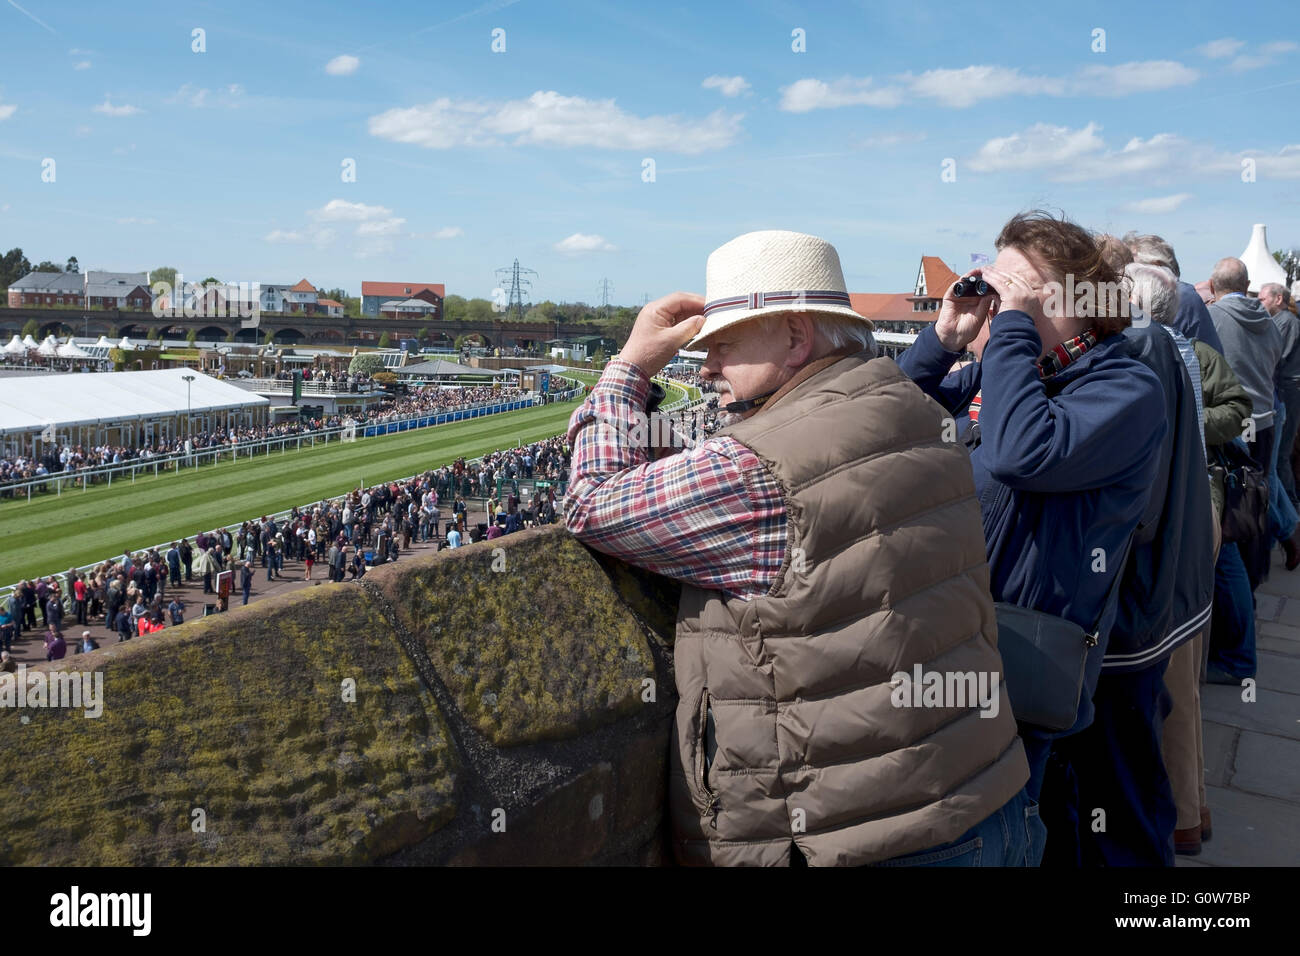 Chester, UK. 4th May, 2016. Chester Races. The first race meeting of the 2016 season at Chester Race Course with - Stock Image